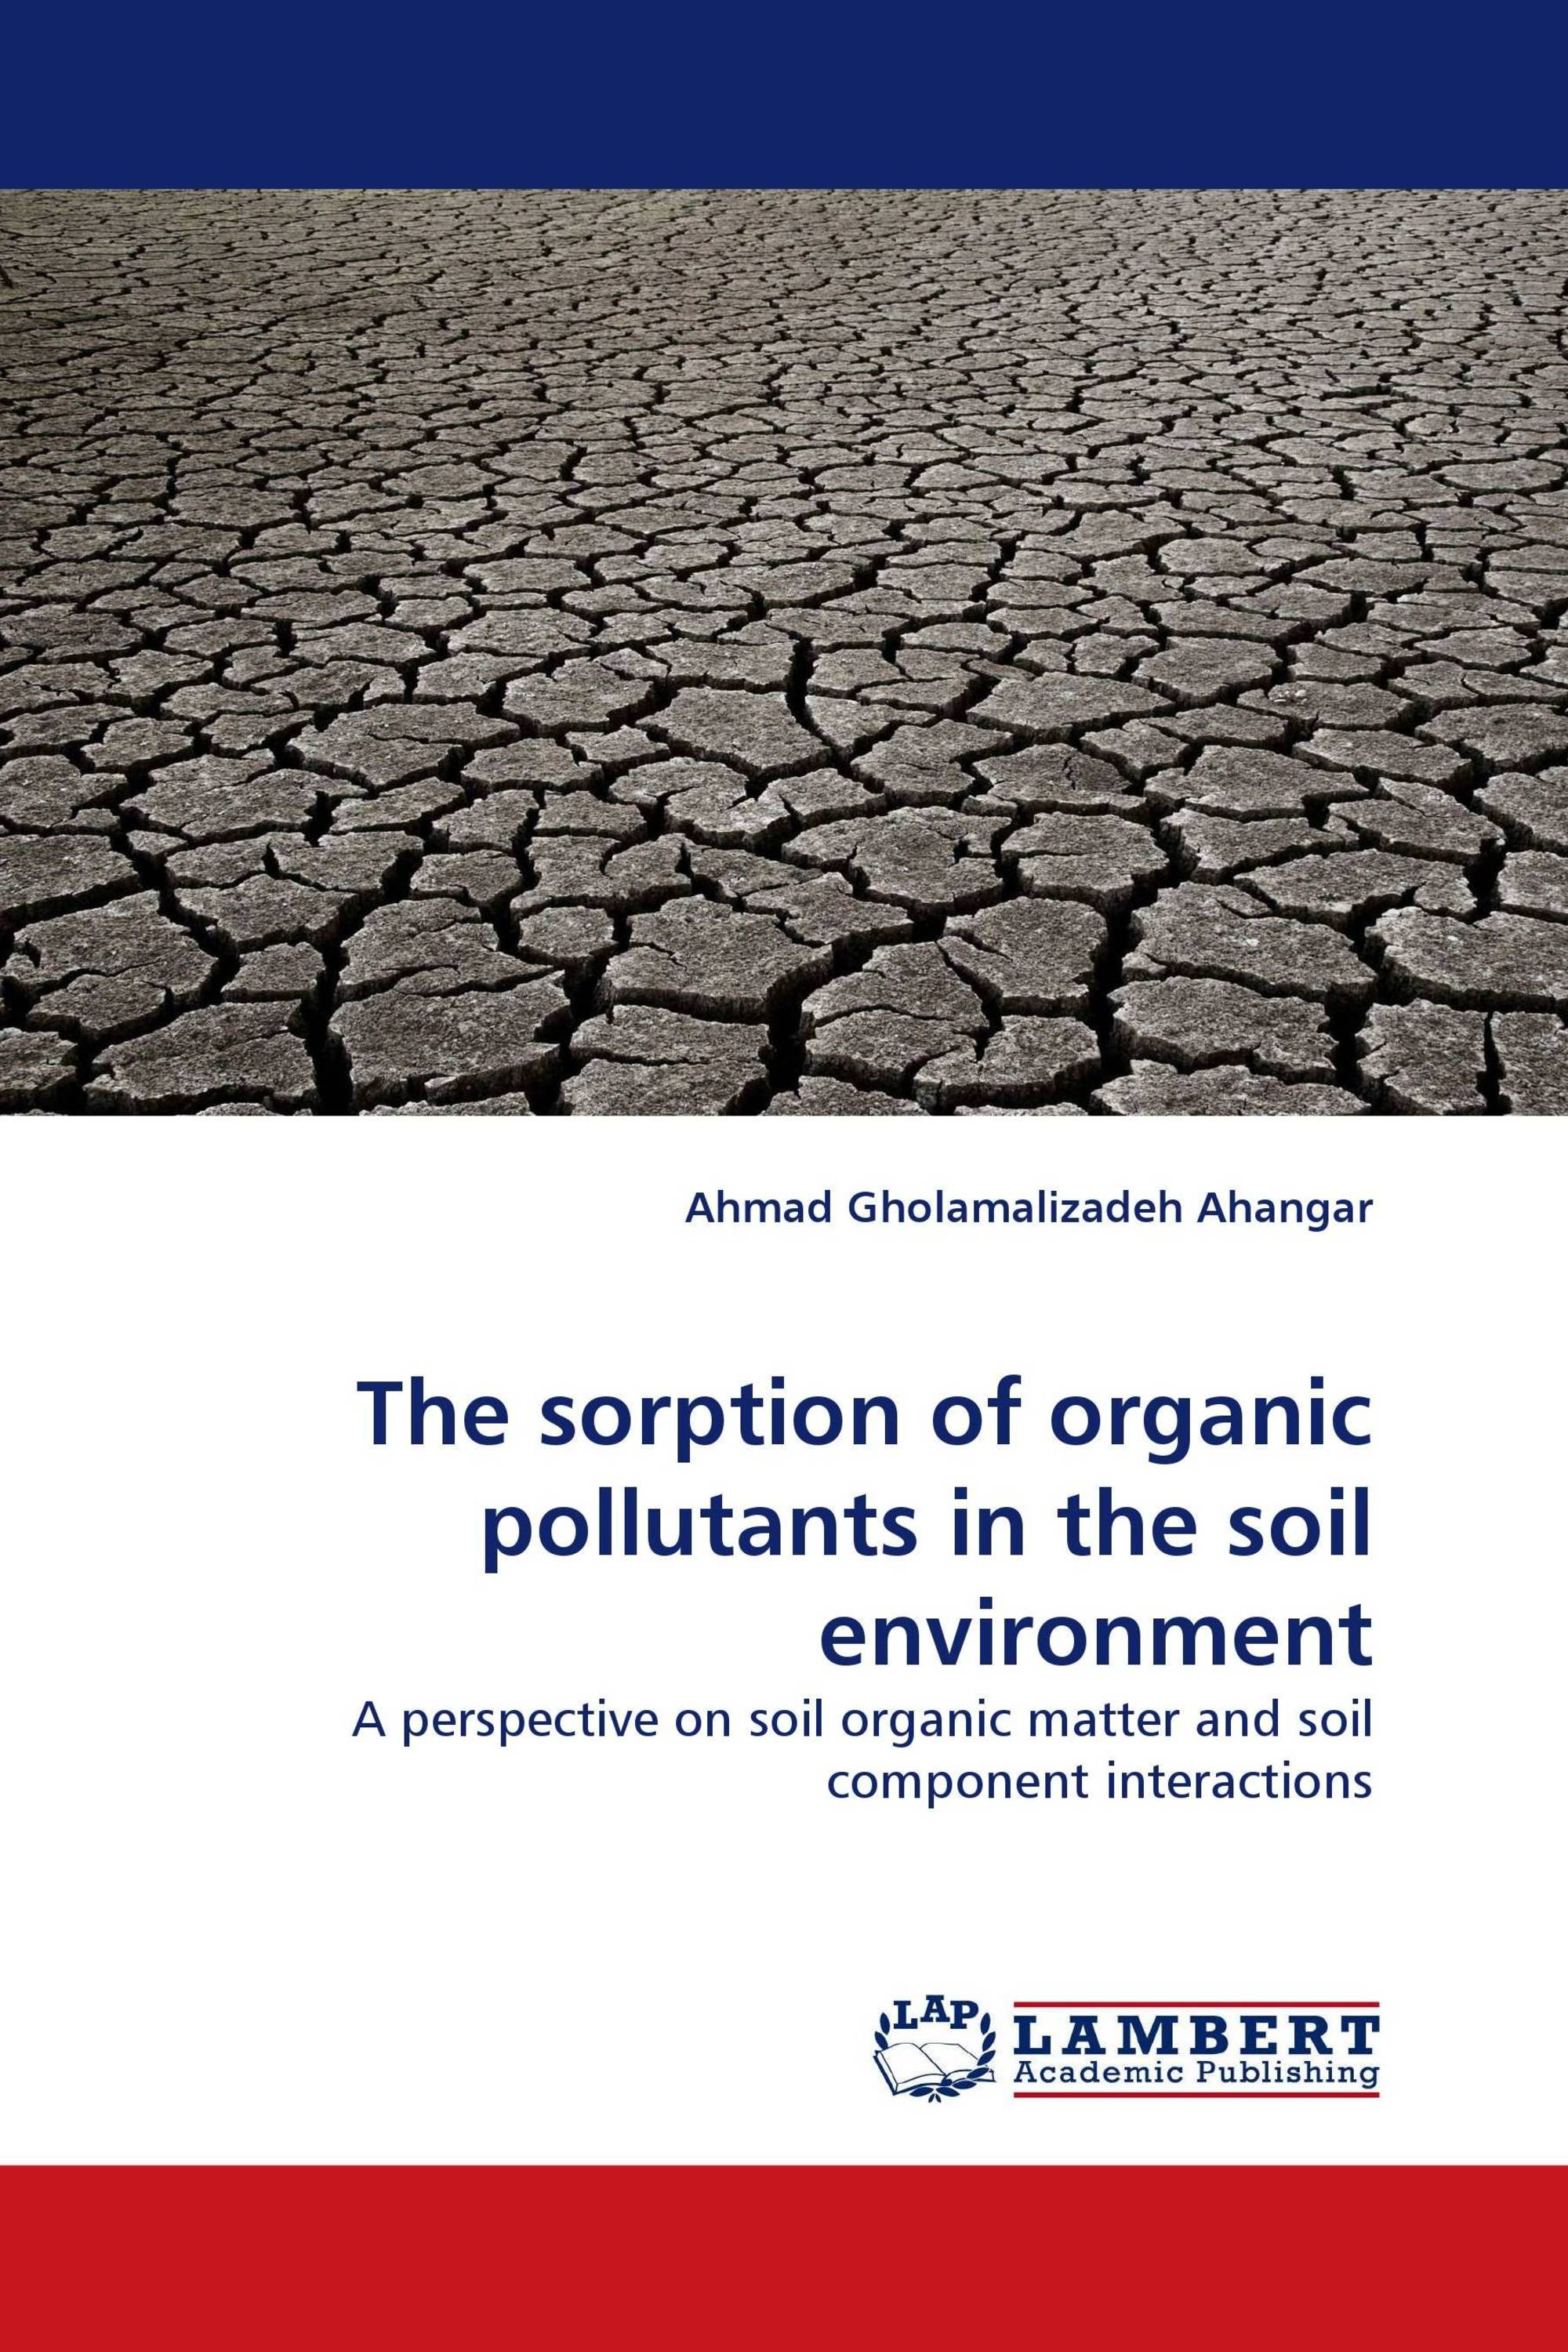 The sorption of organic pollutants in the soil environment